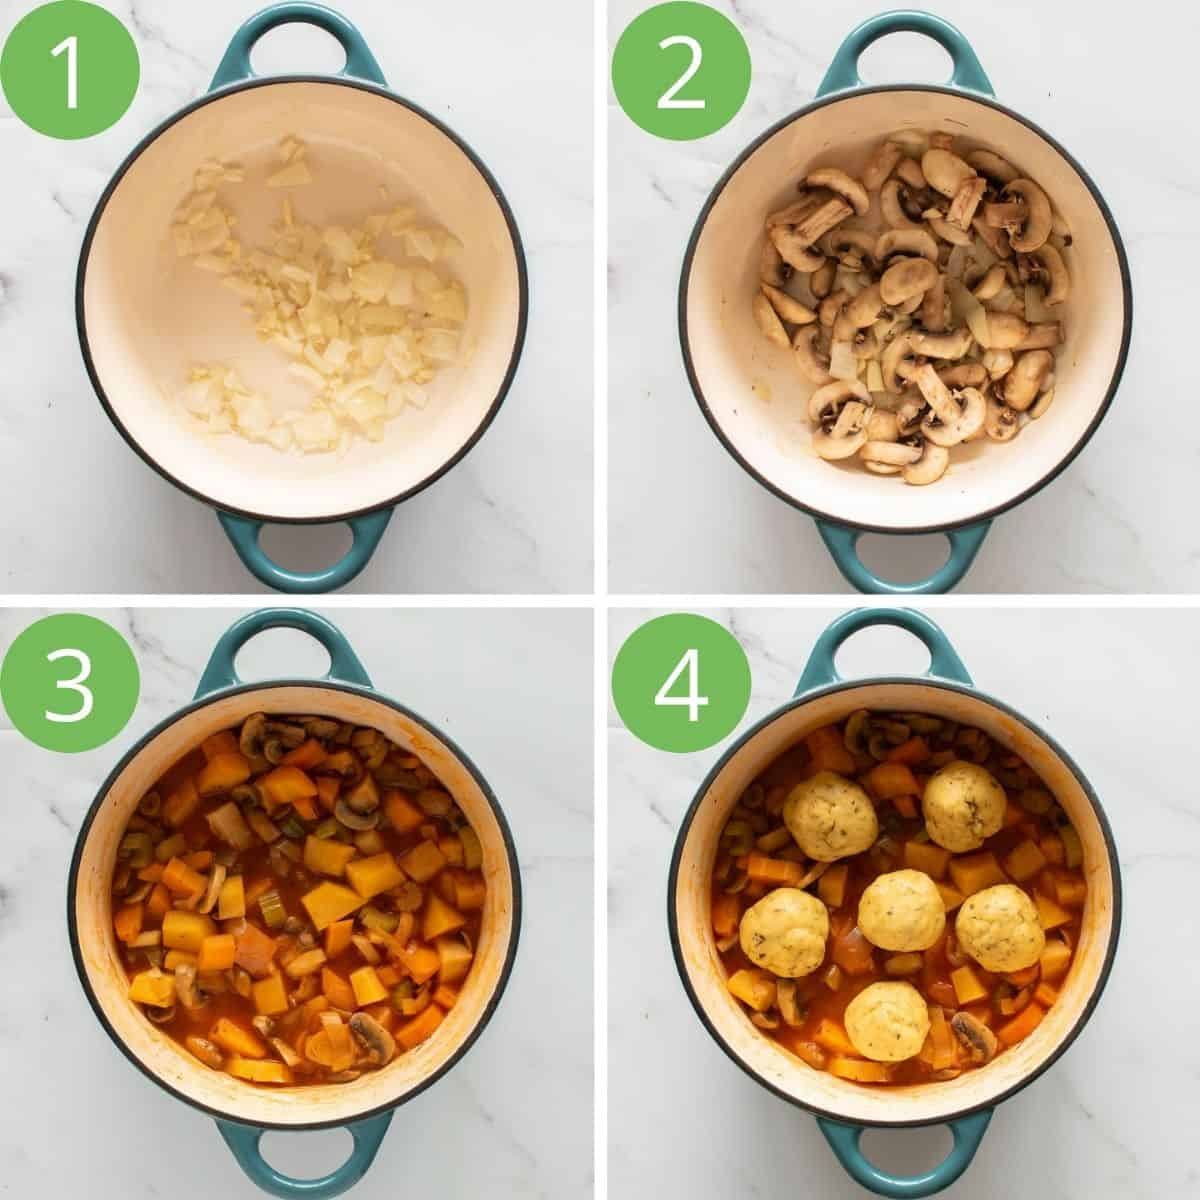 Step by step images showing how to make this recipe.